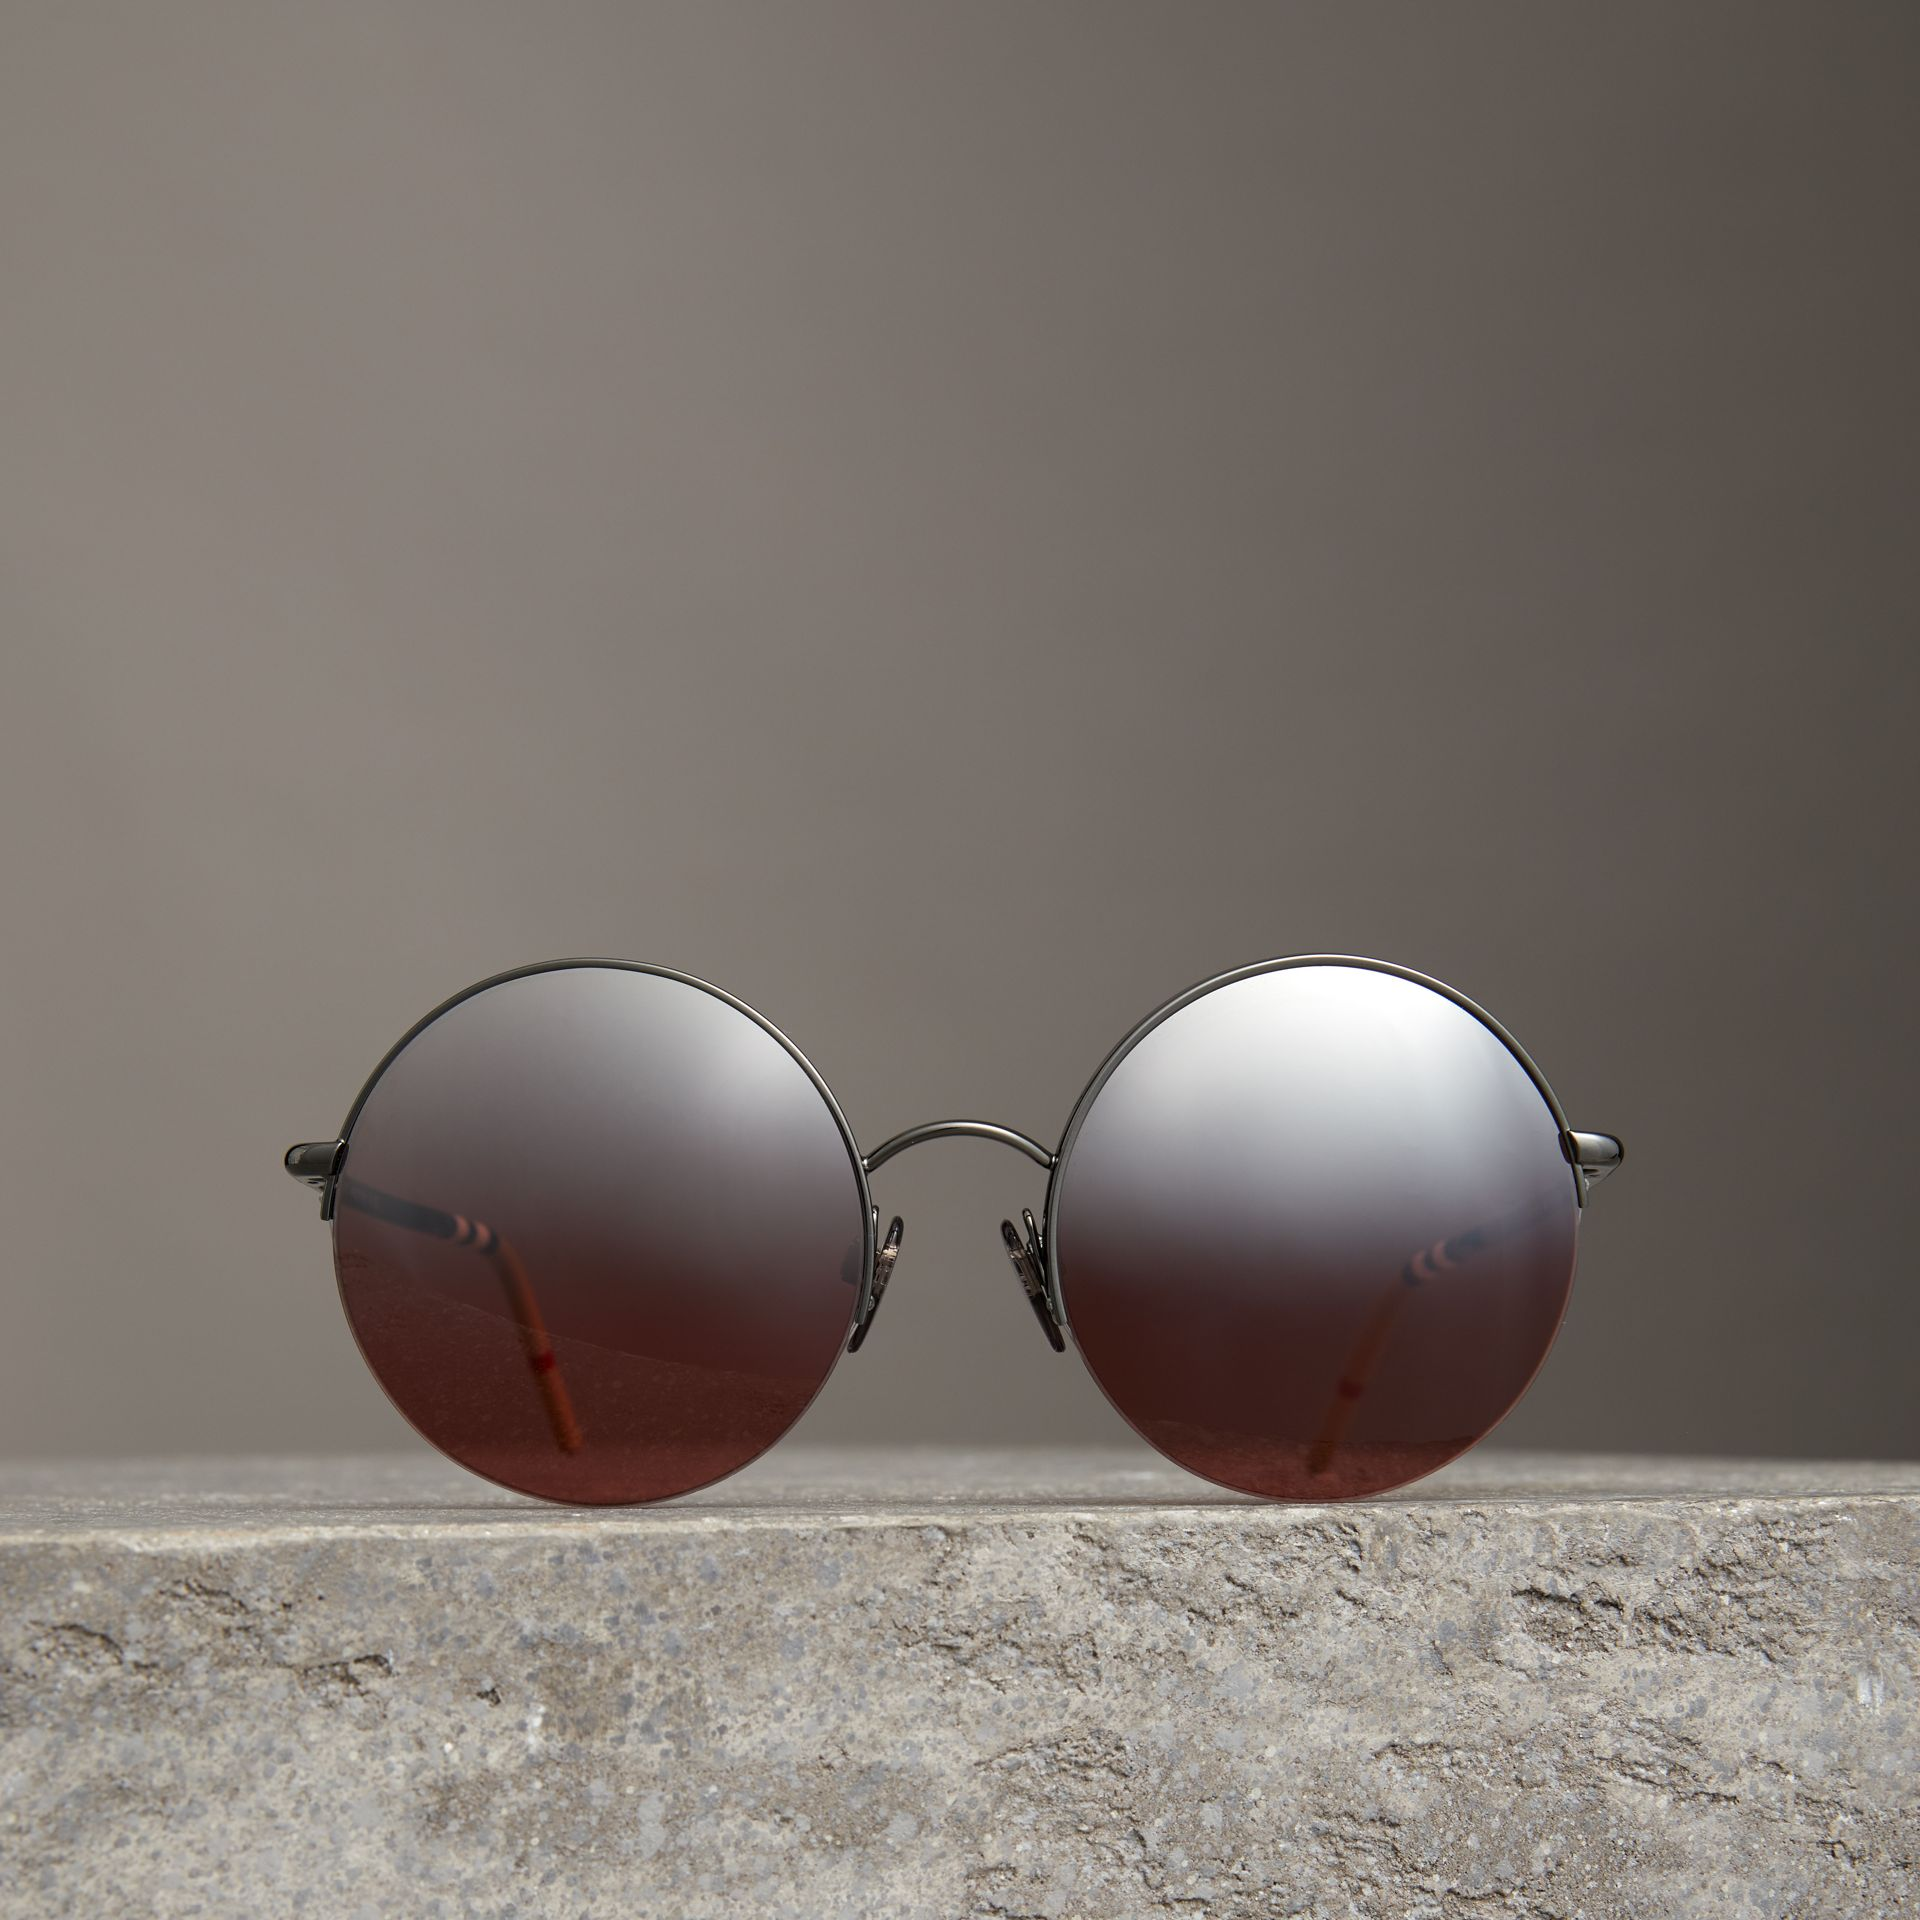 Mirrored Round Frame Sunglasses in Burgundy - Women | Burberry Canada - gallery image 2